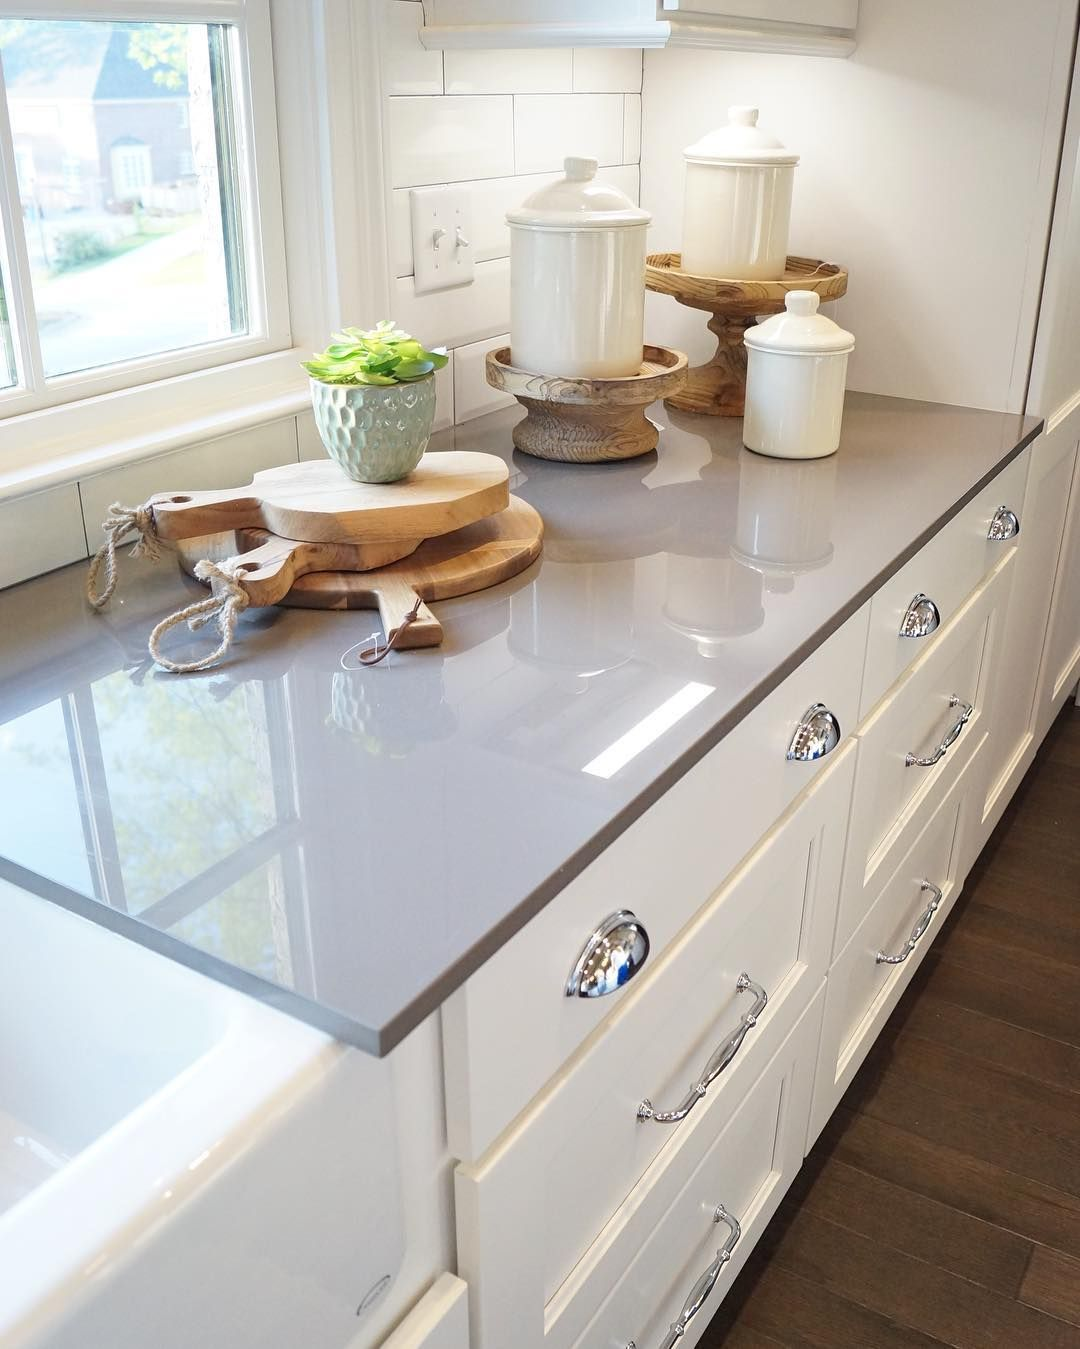 White Kitchen Counter: There's Just Something About A Bright Kitchen With White